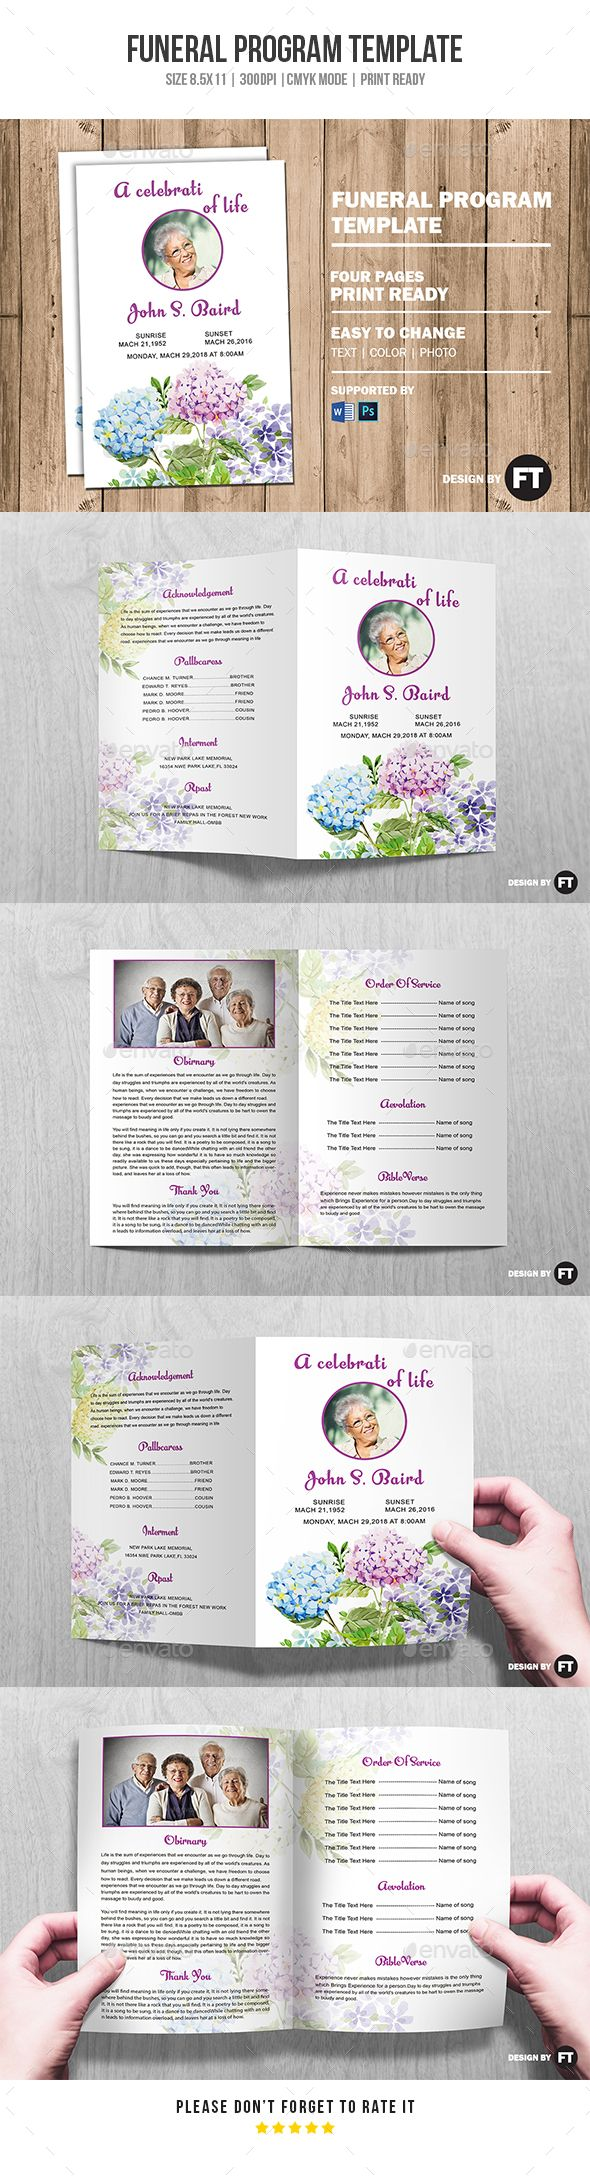 Funeral Program Template Vol 16 by PrintTemplate Funeral Program Template �20Funeral Memorial Program Template �20Printable Template �20Editable Photoshop Template �20INSTANT DOWNLOAD